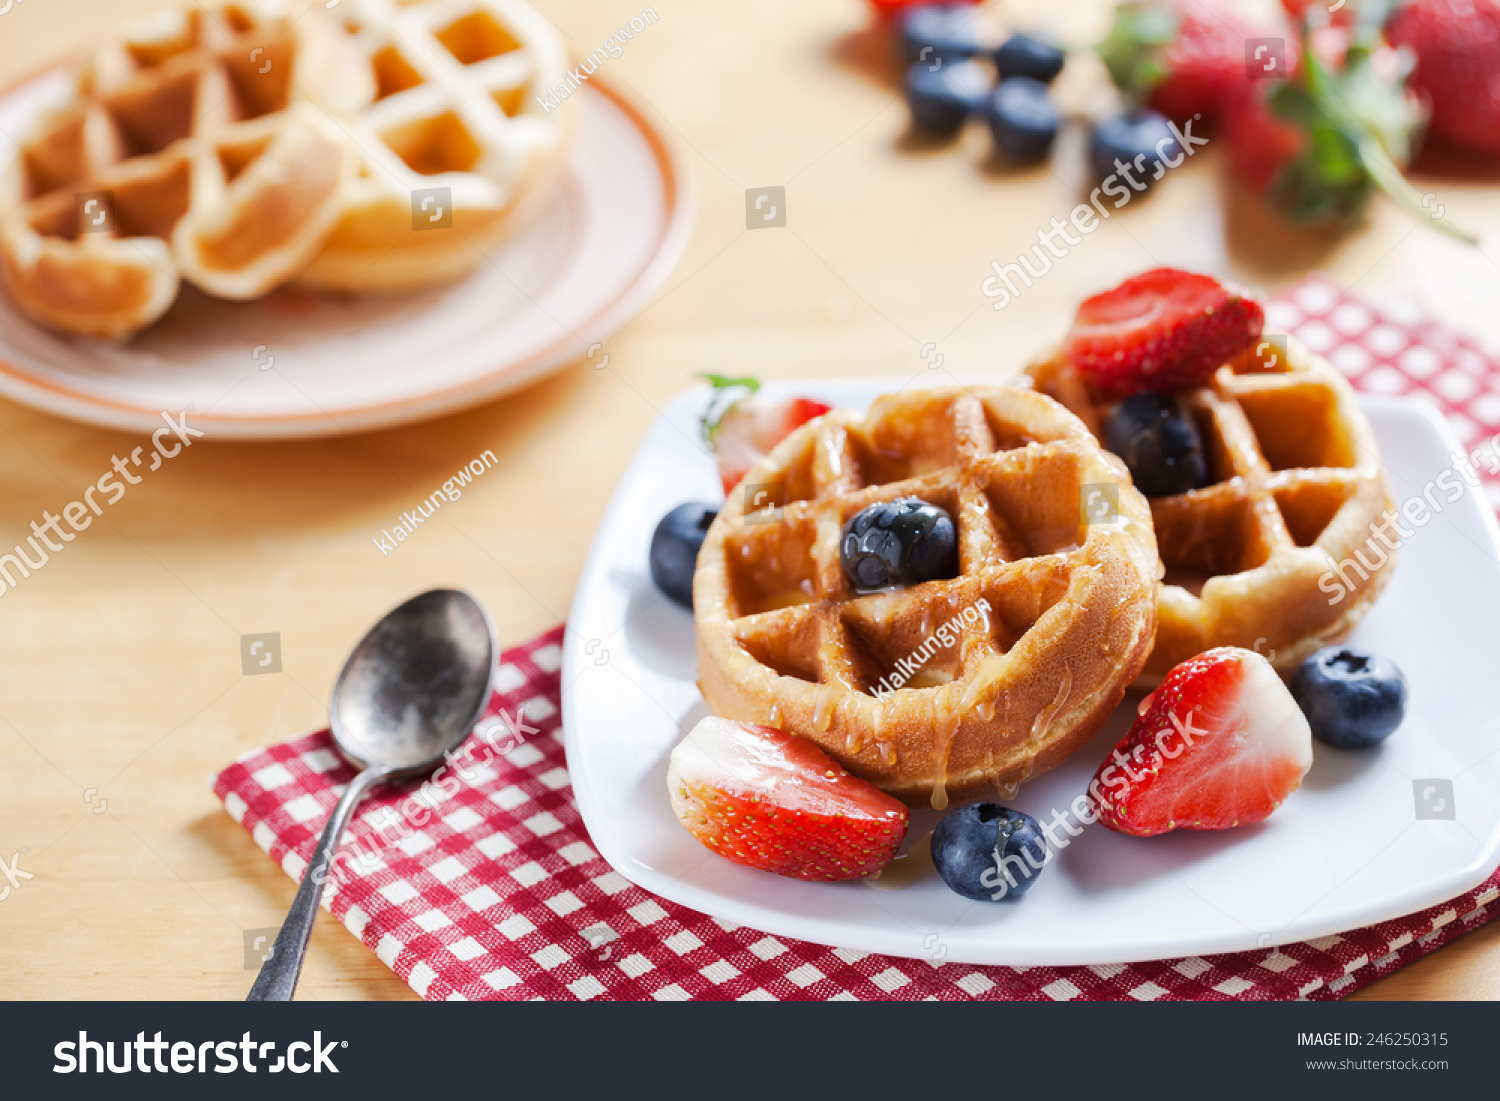 Waffles With Strawberry , Blueberry And Caramel Sauce Stock Photo ...